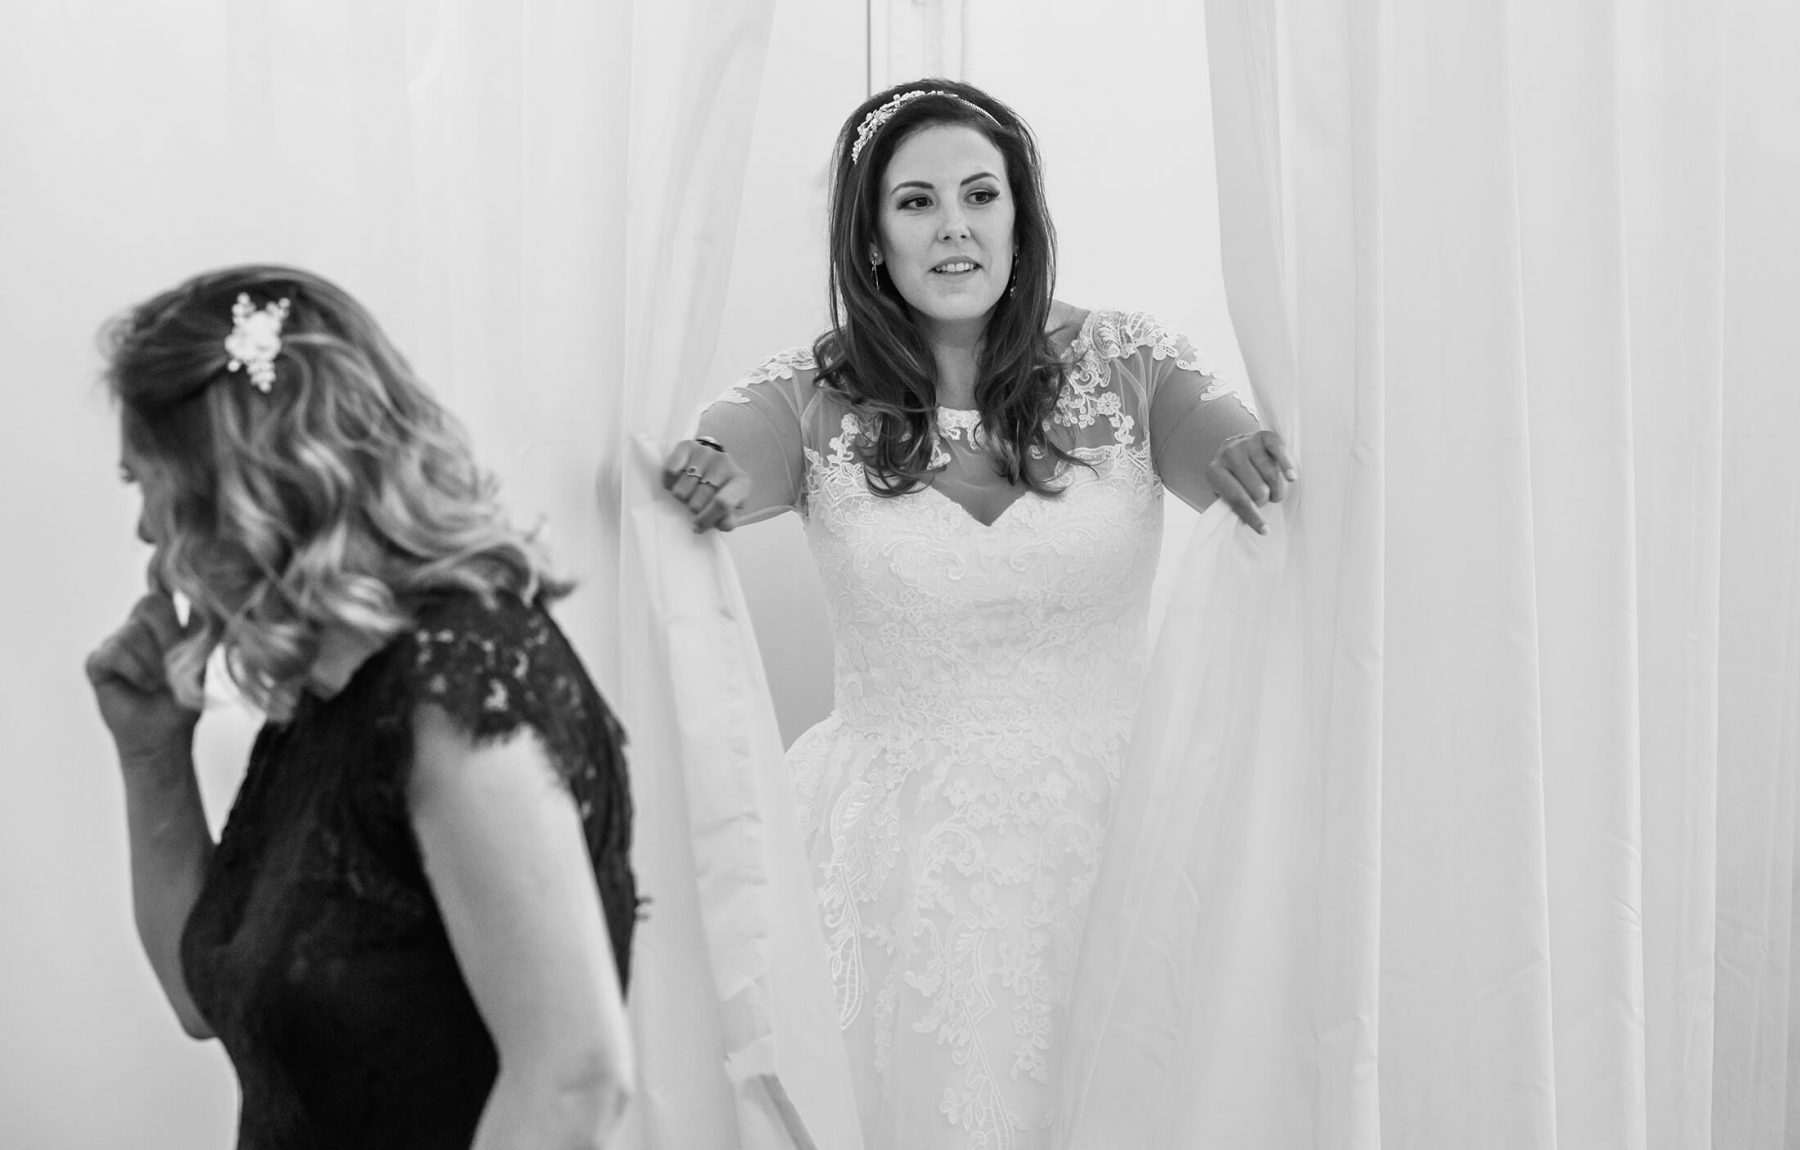 The bride appears in her dress from behind a curtain